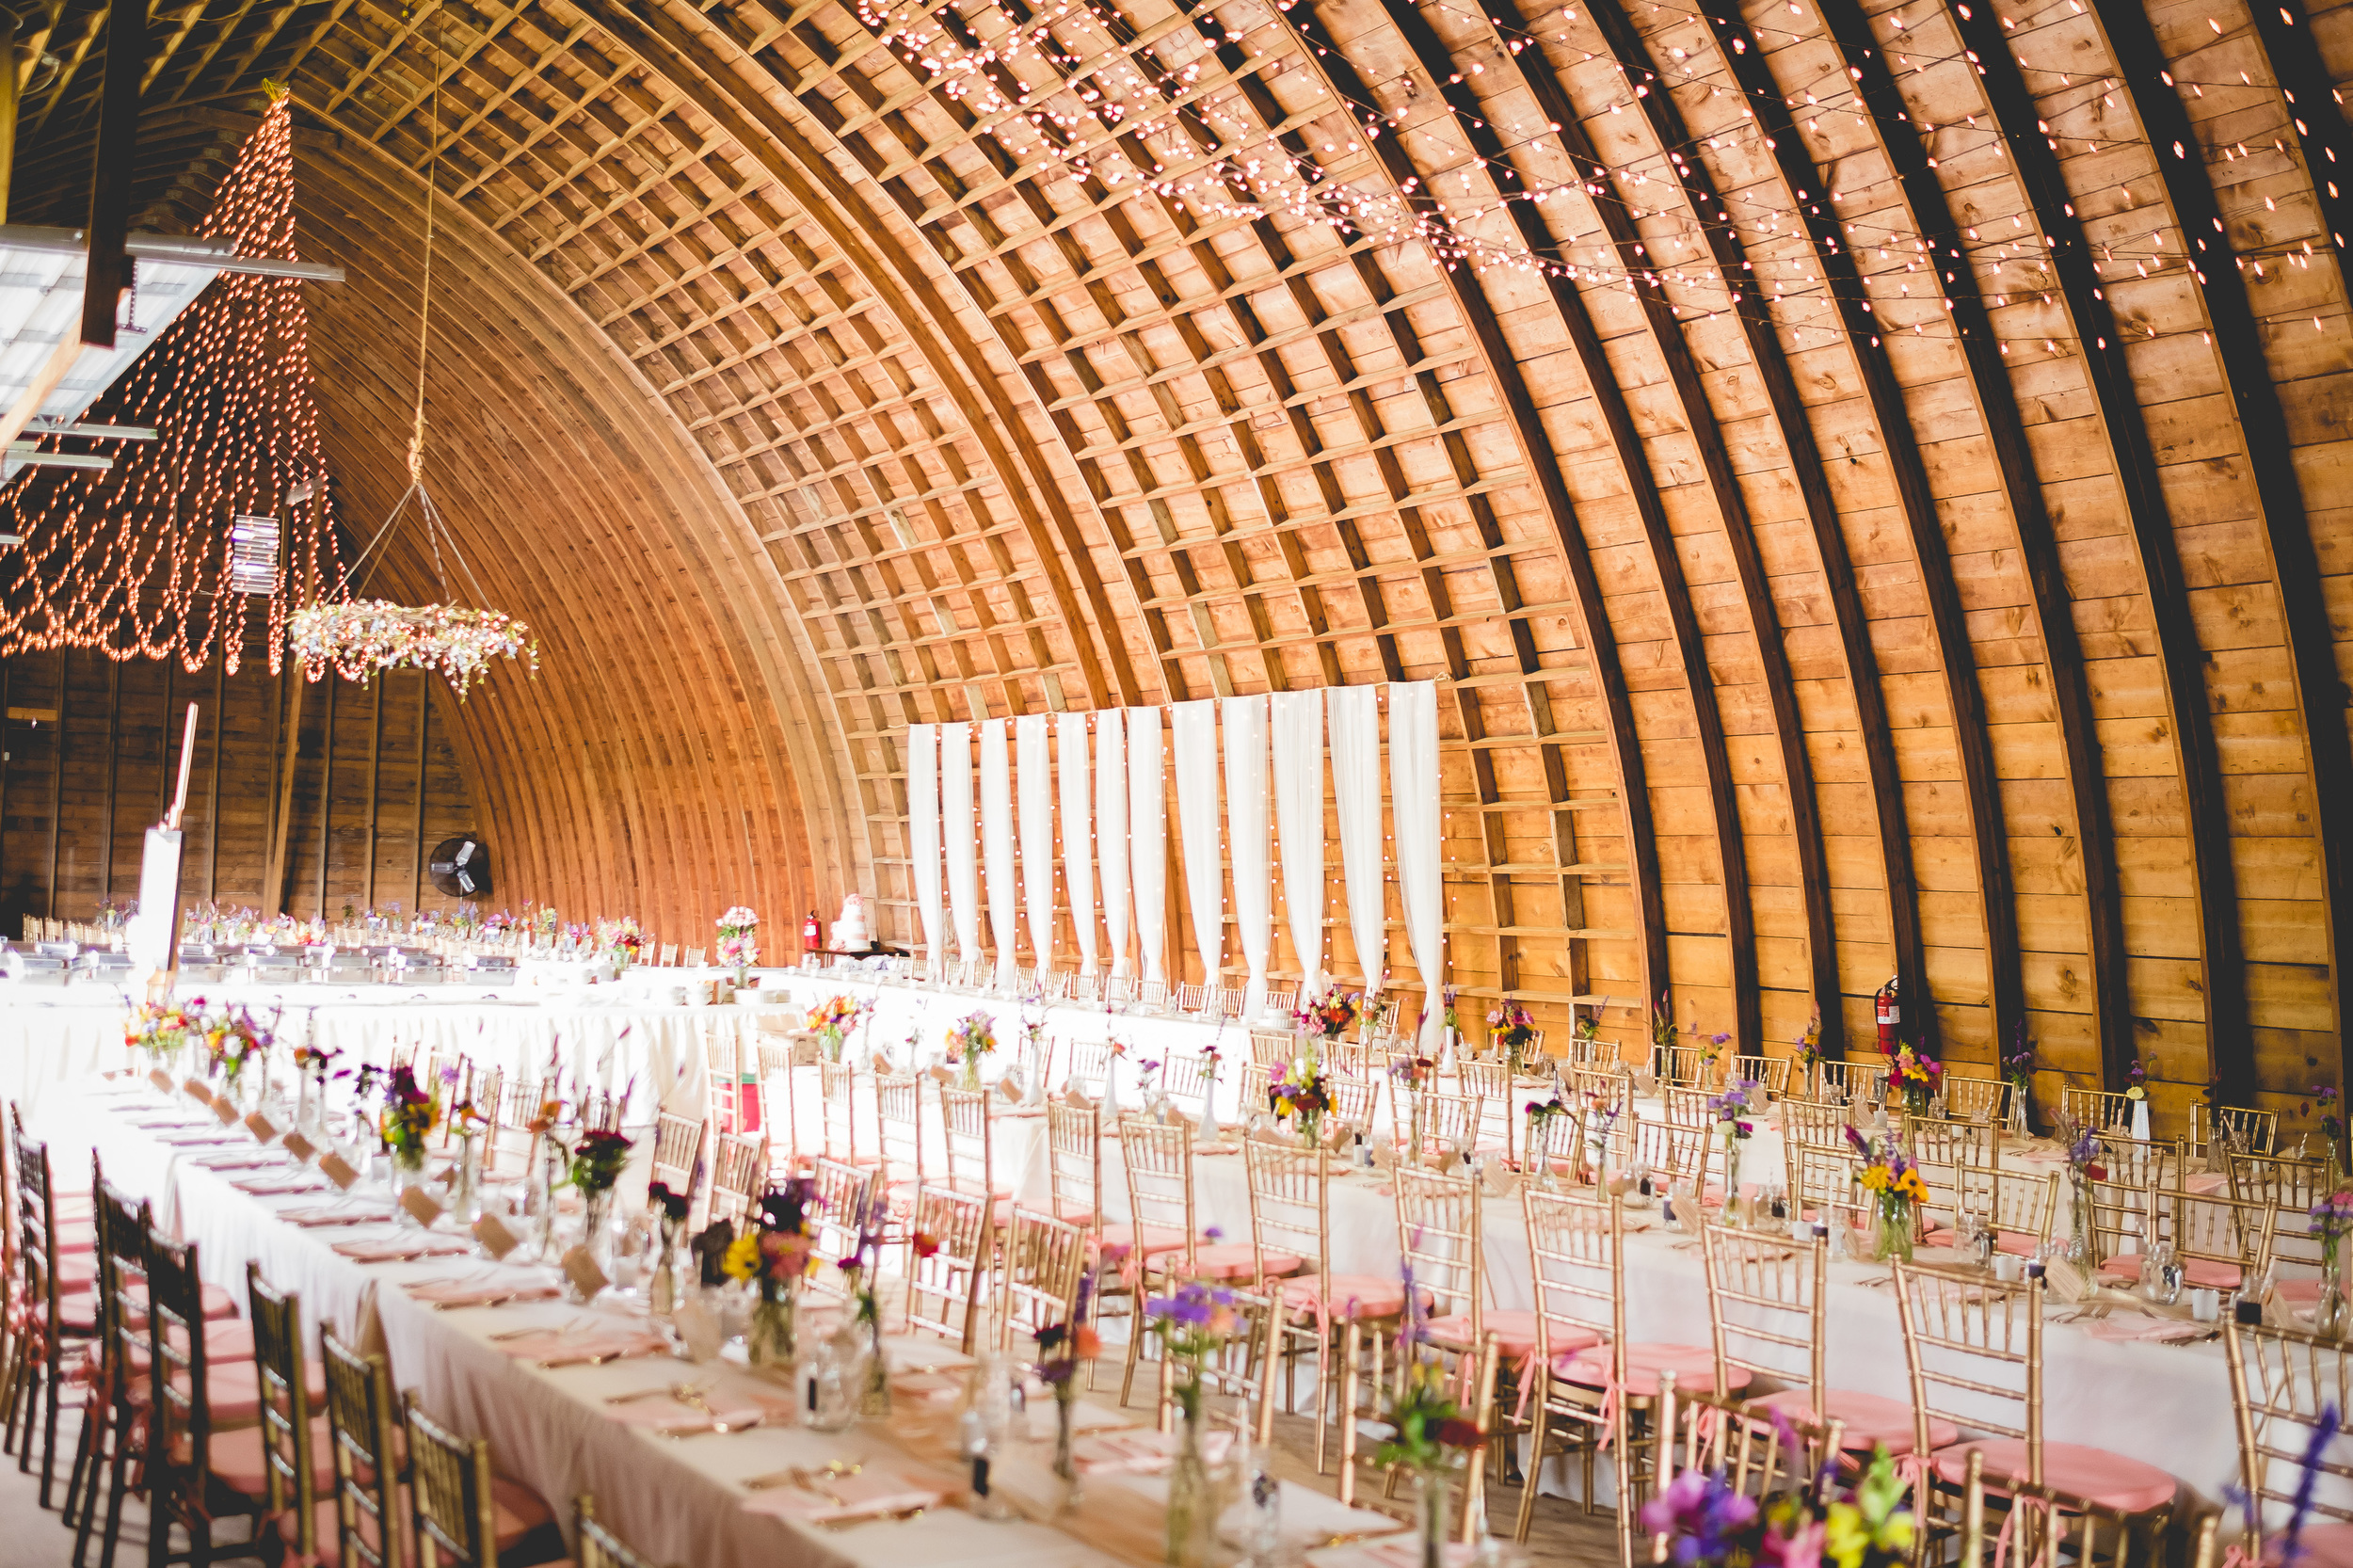 Our wood arched 4800 square foot barn